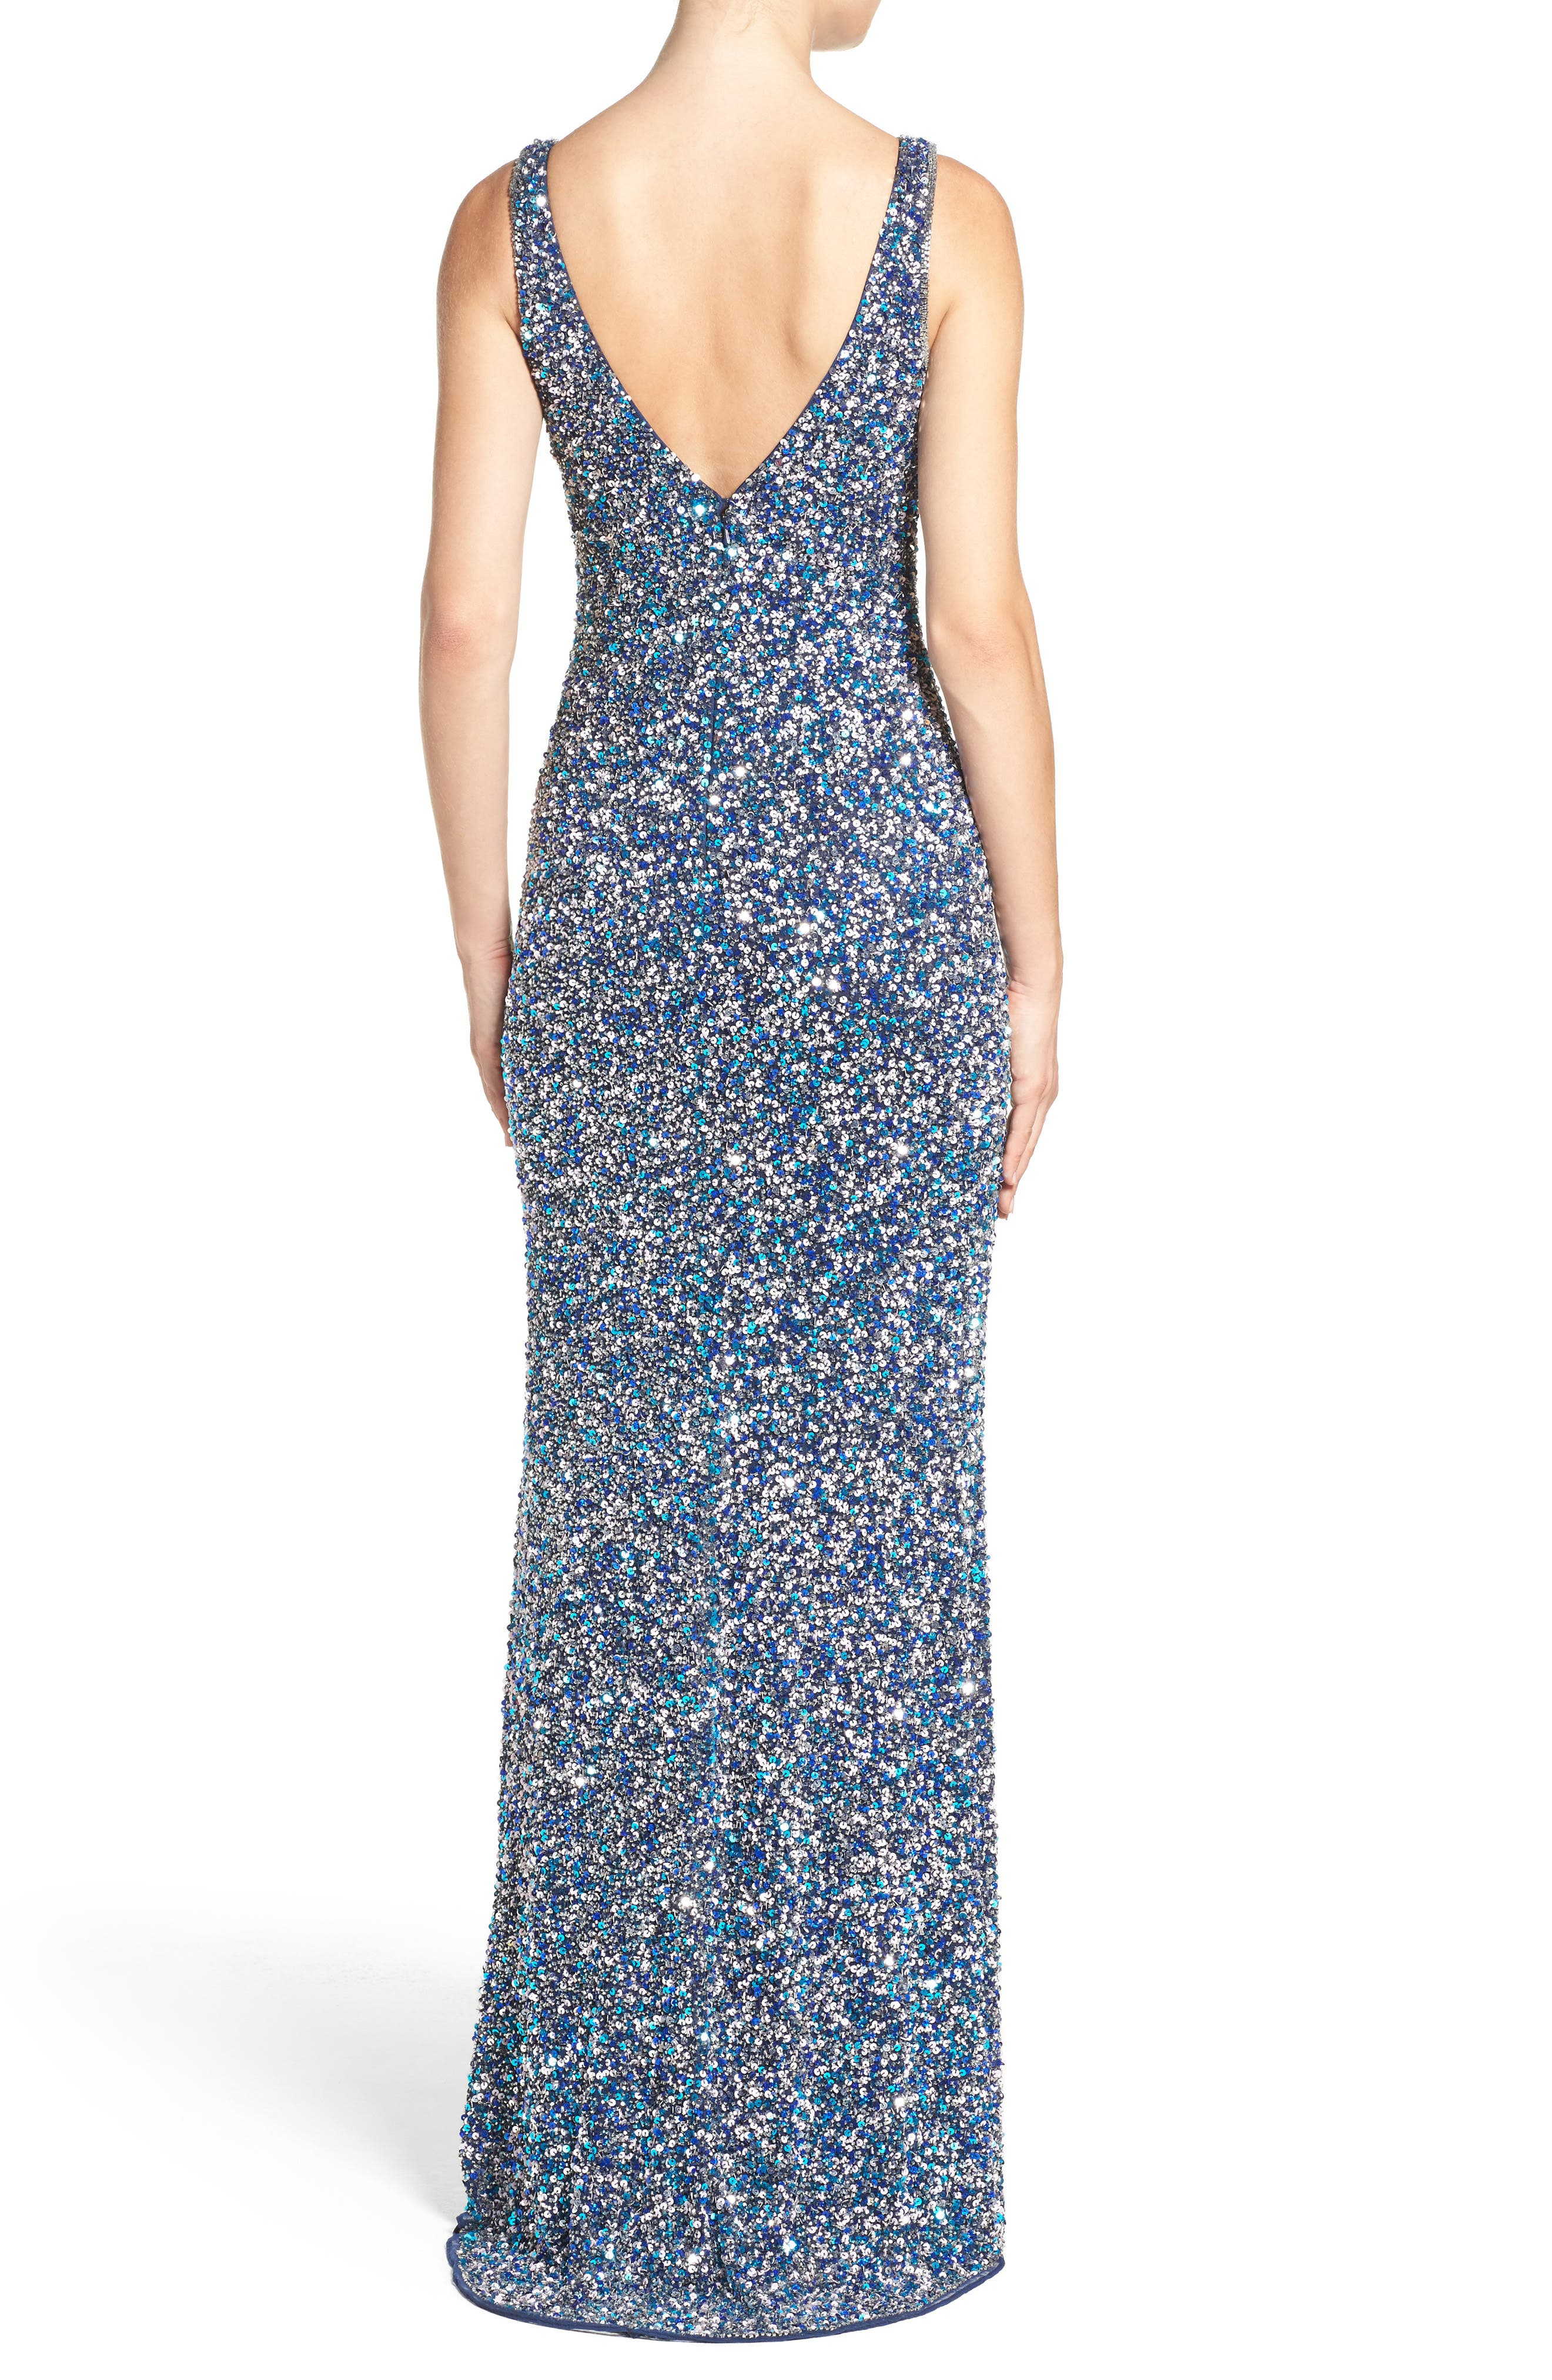 MAC DUGGAL, Sequin Slit Gown, Alternate thumbnail 2, color, NAVY MULTI